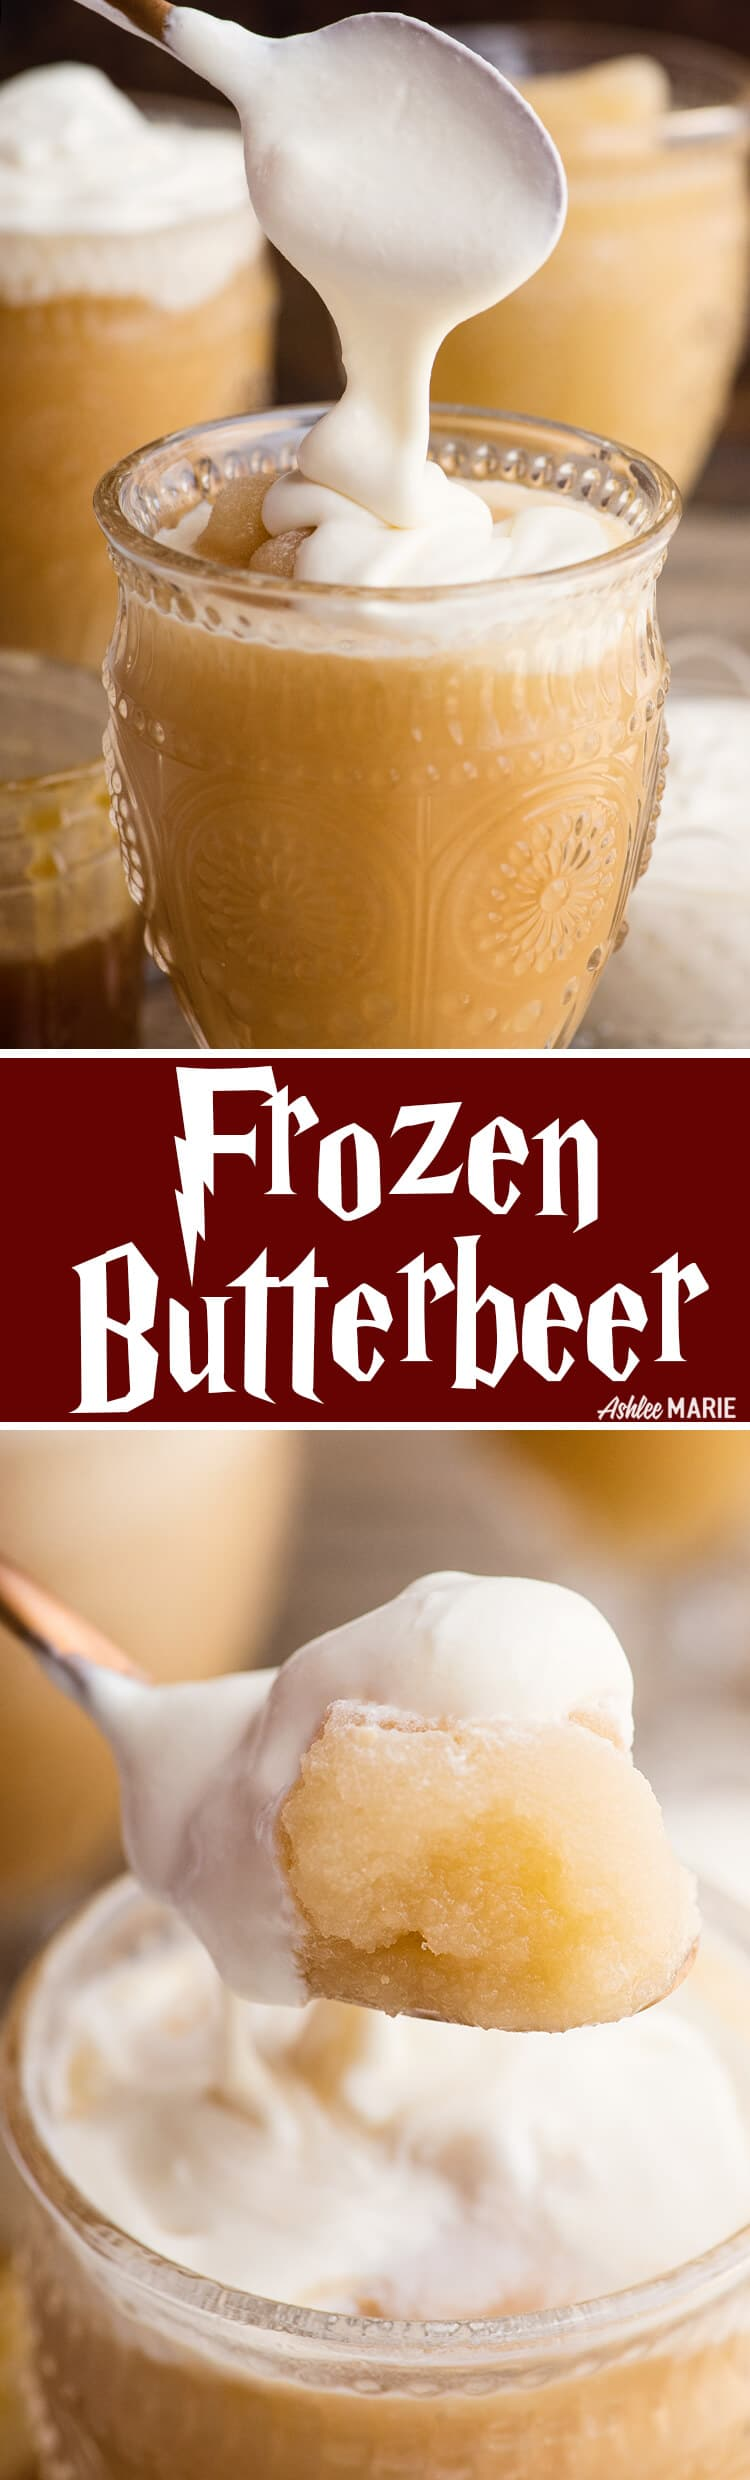 enjoy this harry potter favorite - homemade frozen butterbeer! recipe and video tutorial  | harry potter | butterbeer | universal studios | wizarding world of harry potter | frozen butterbeer | Ashlee Marie #butterbeer #harrypotter #universalstudios